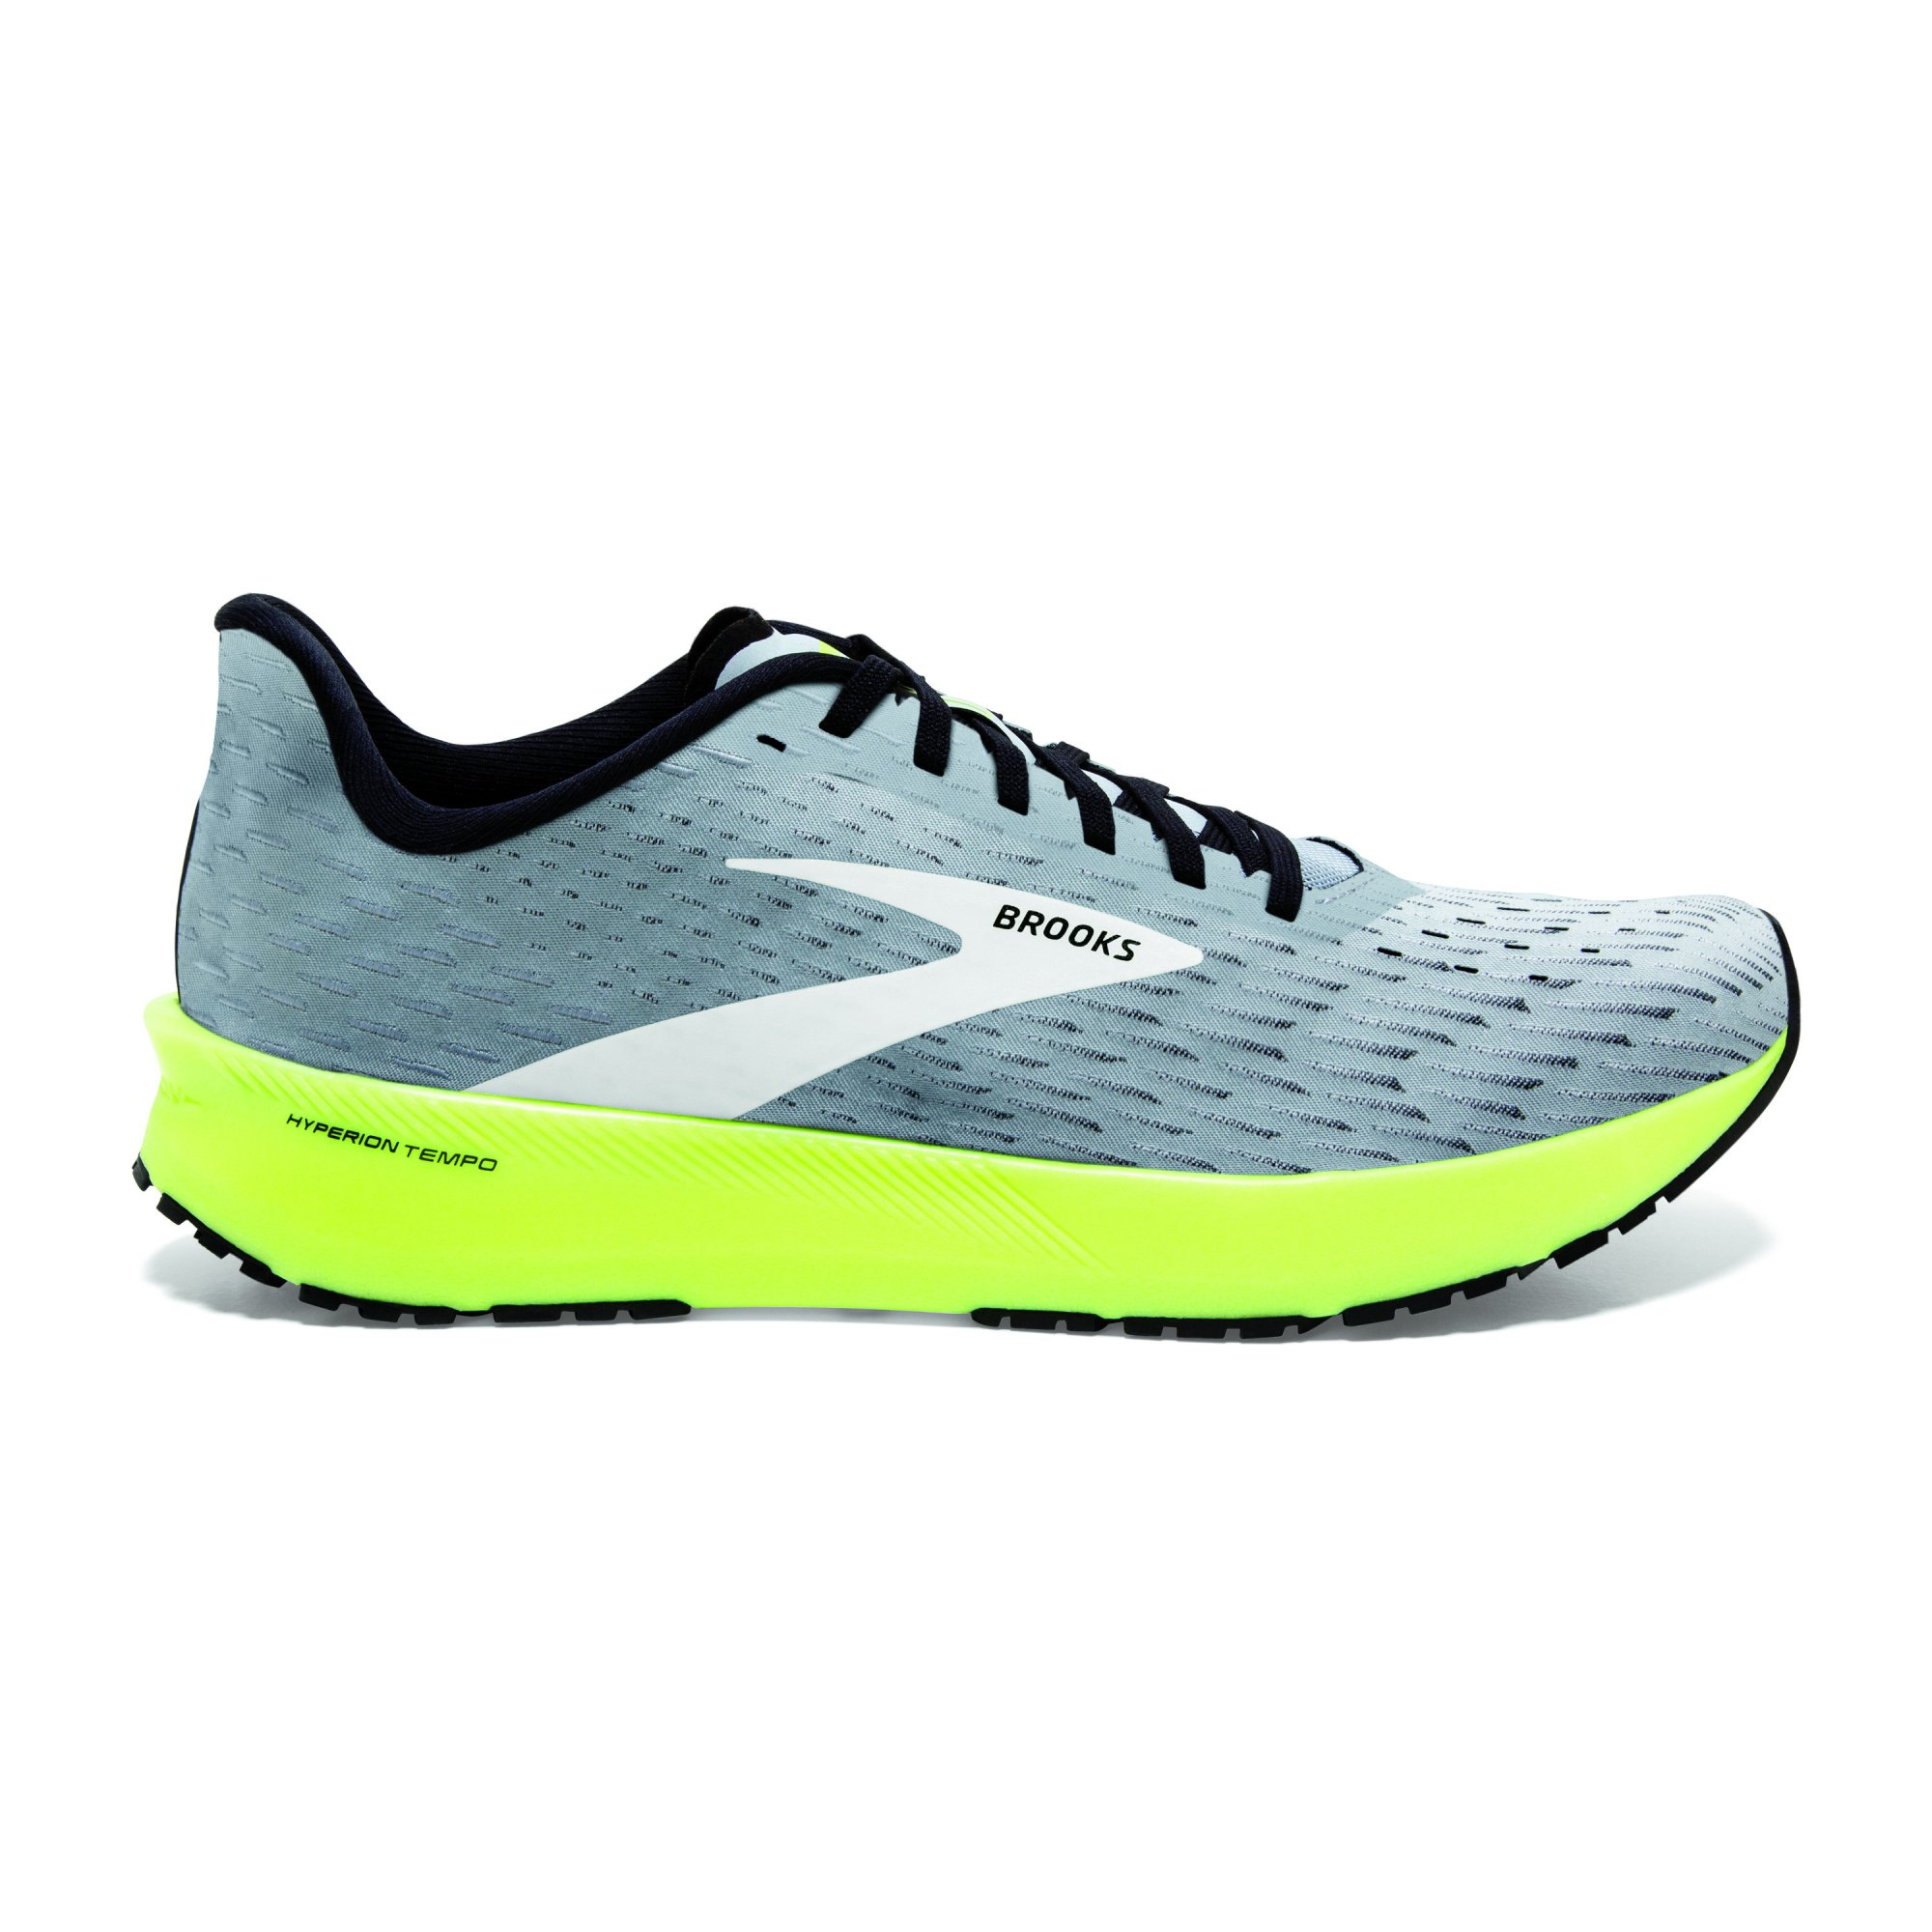 BROOKS Hyperion Tempo Grey/Black/Nightlife